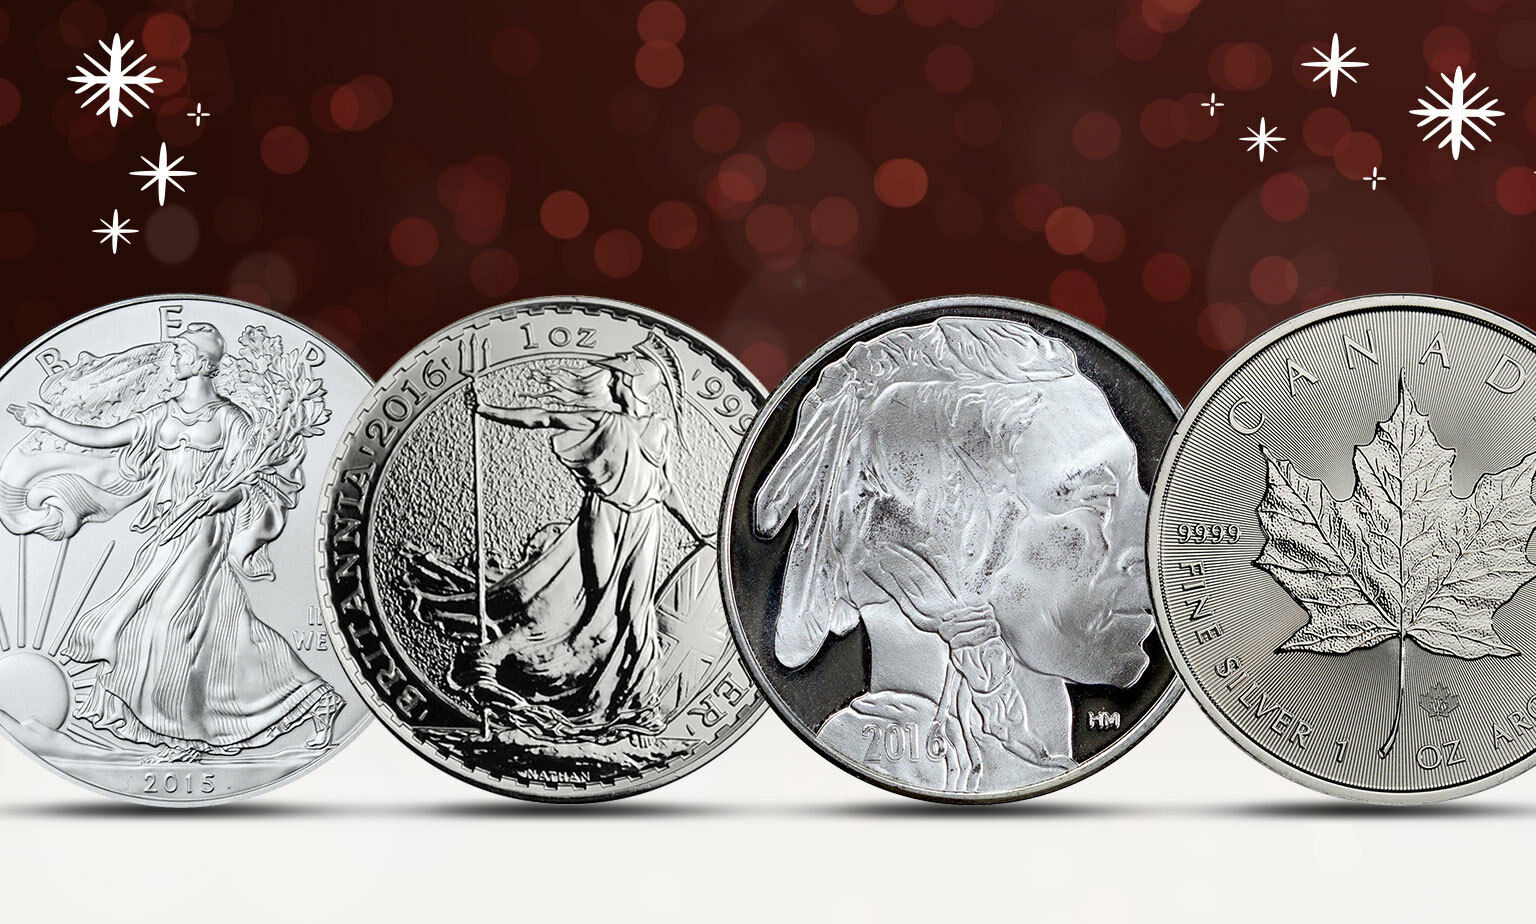 Up to 30% Off Collectible Coins and Bullion